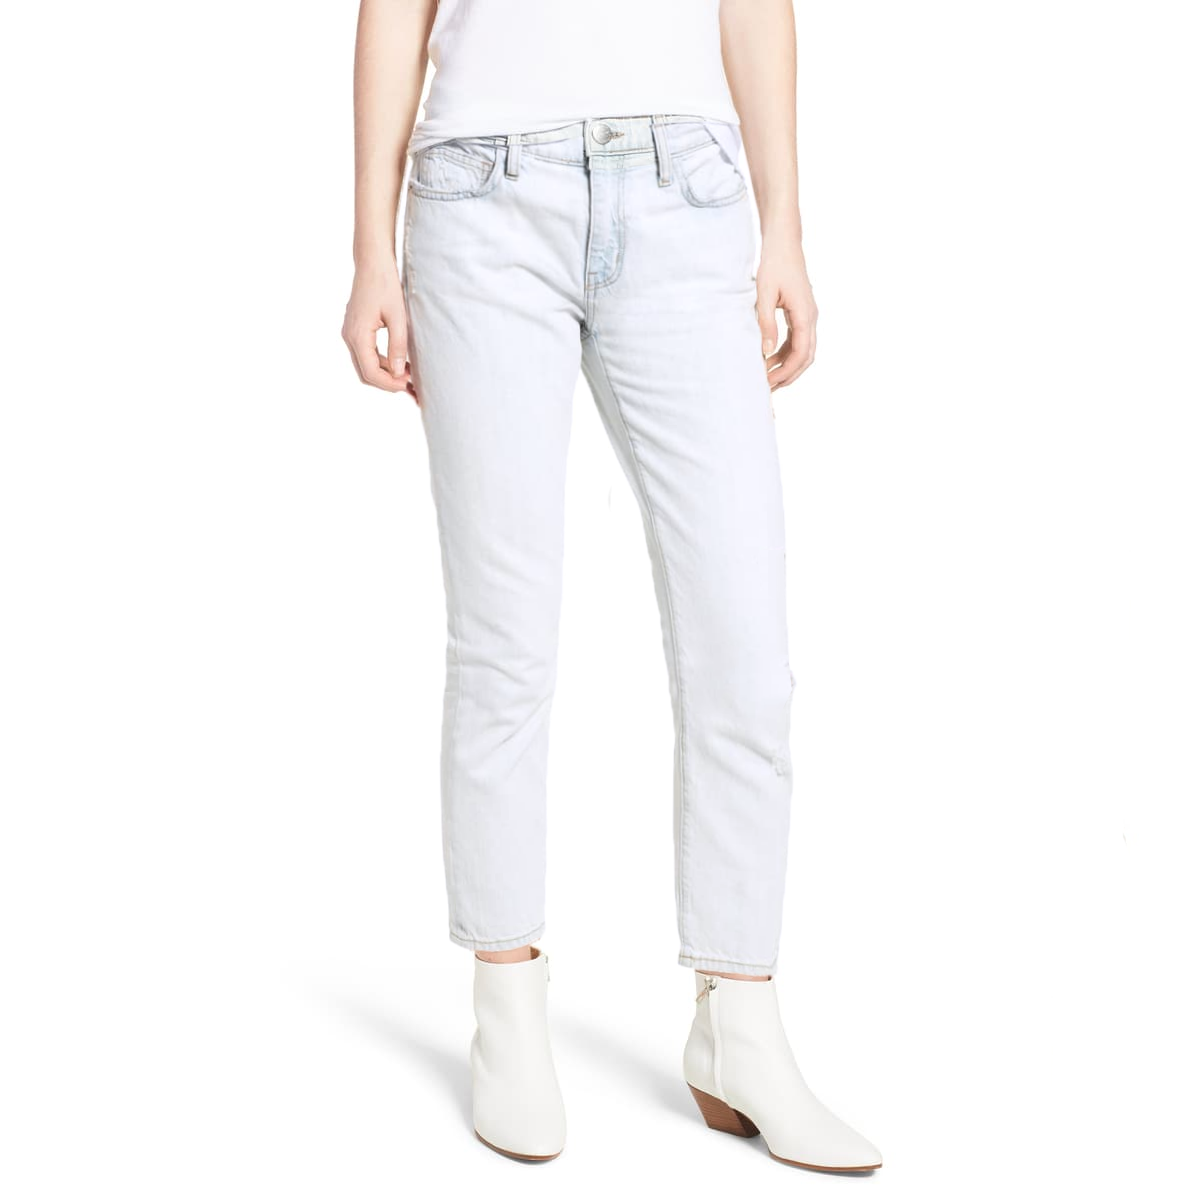 Weekday Women's Light Wash Straight Fit Denim Women's Denim SRK 24 30